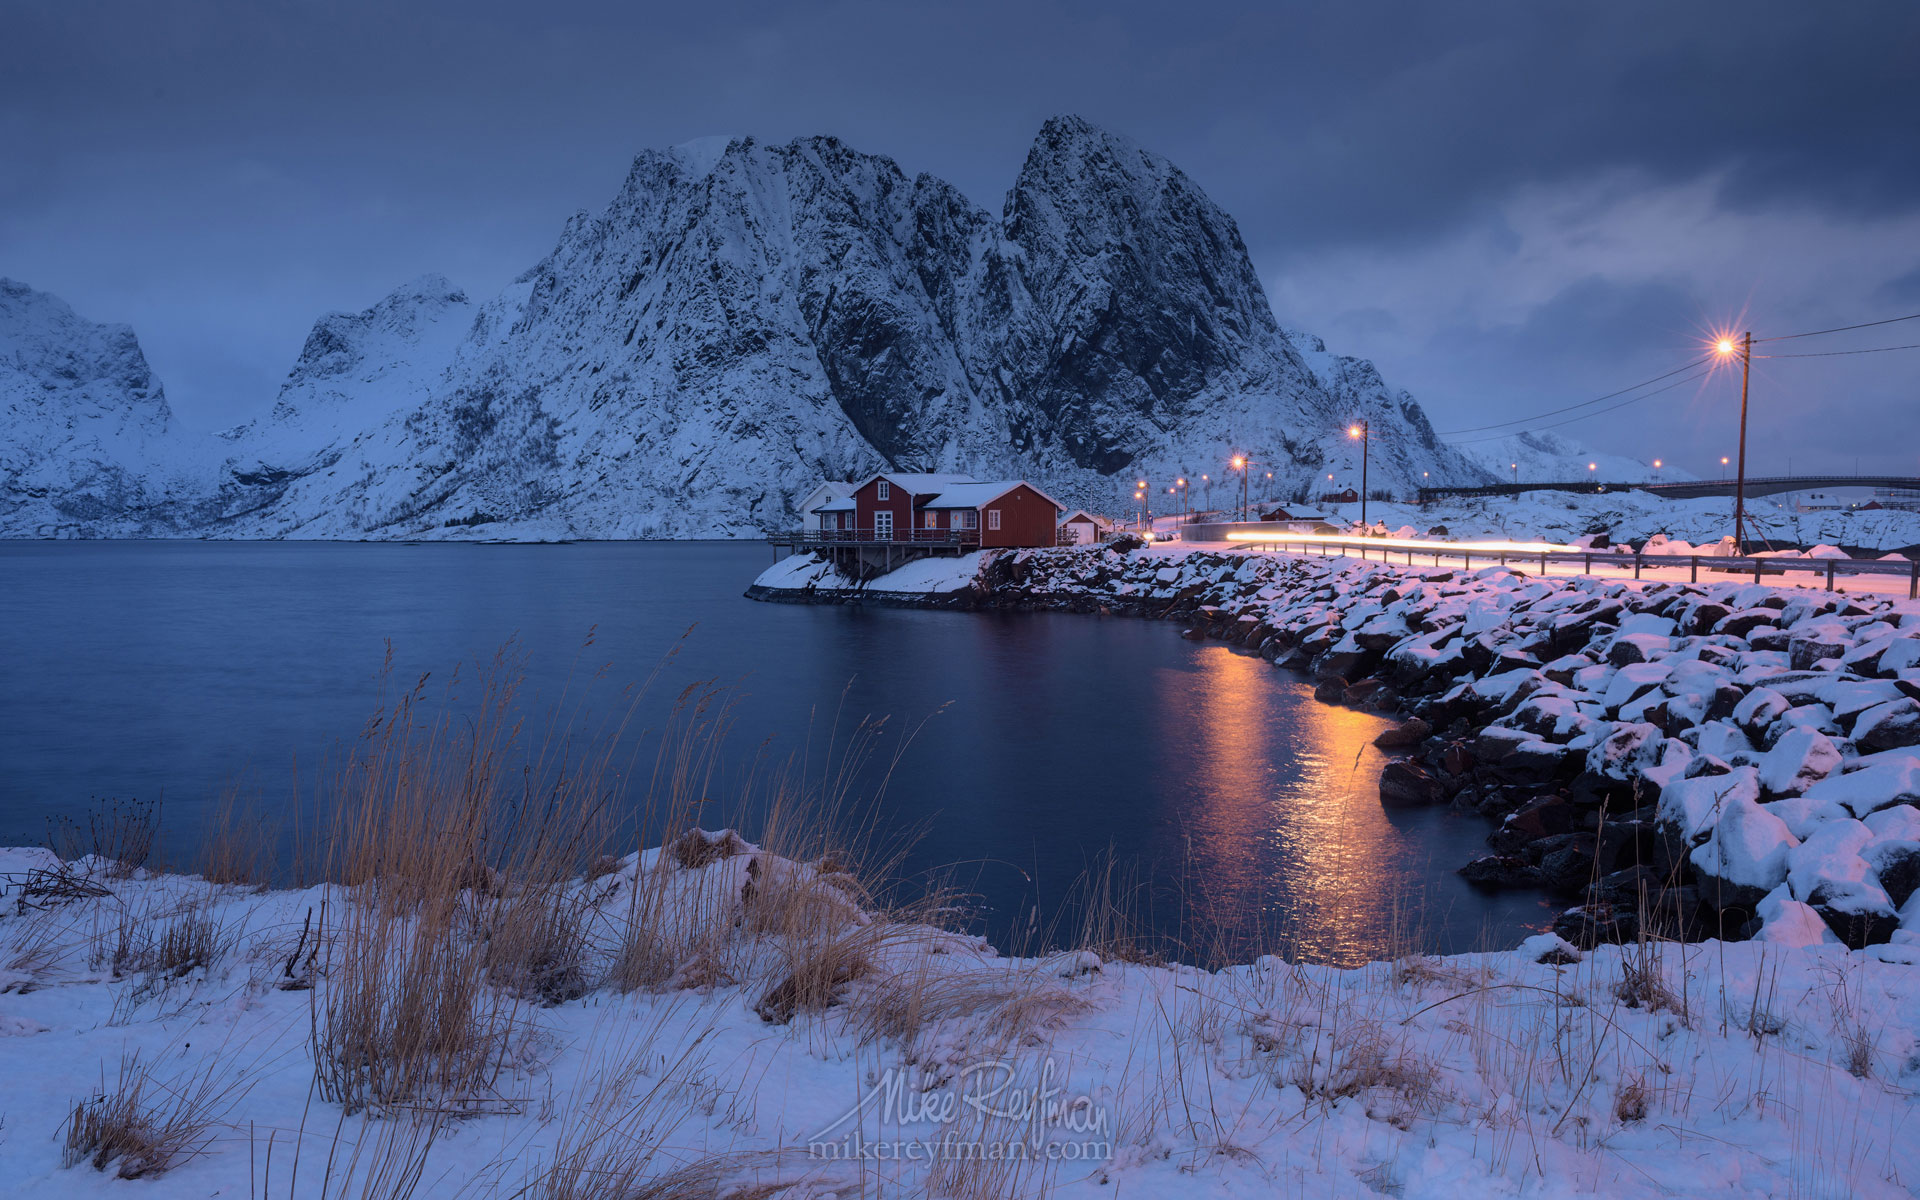 lf mrd1e0840 46 lofoten archipelago in winter arctic. Black Bedroom Furniture Sets. Home Design Ideas